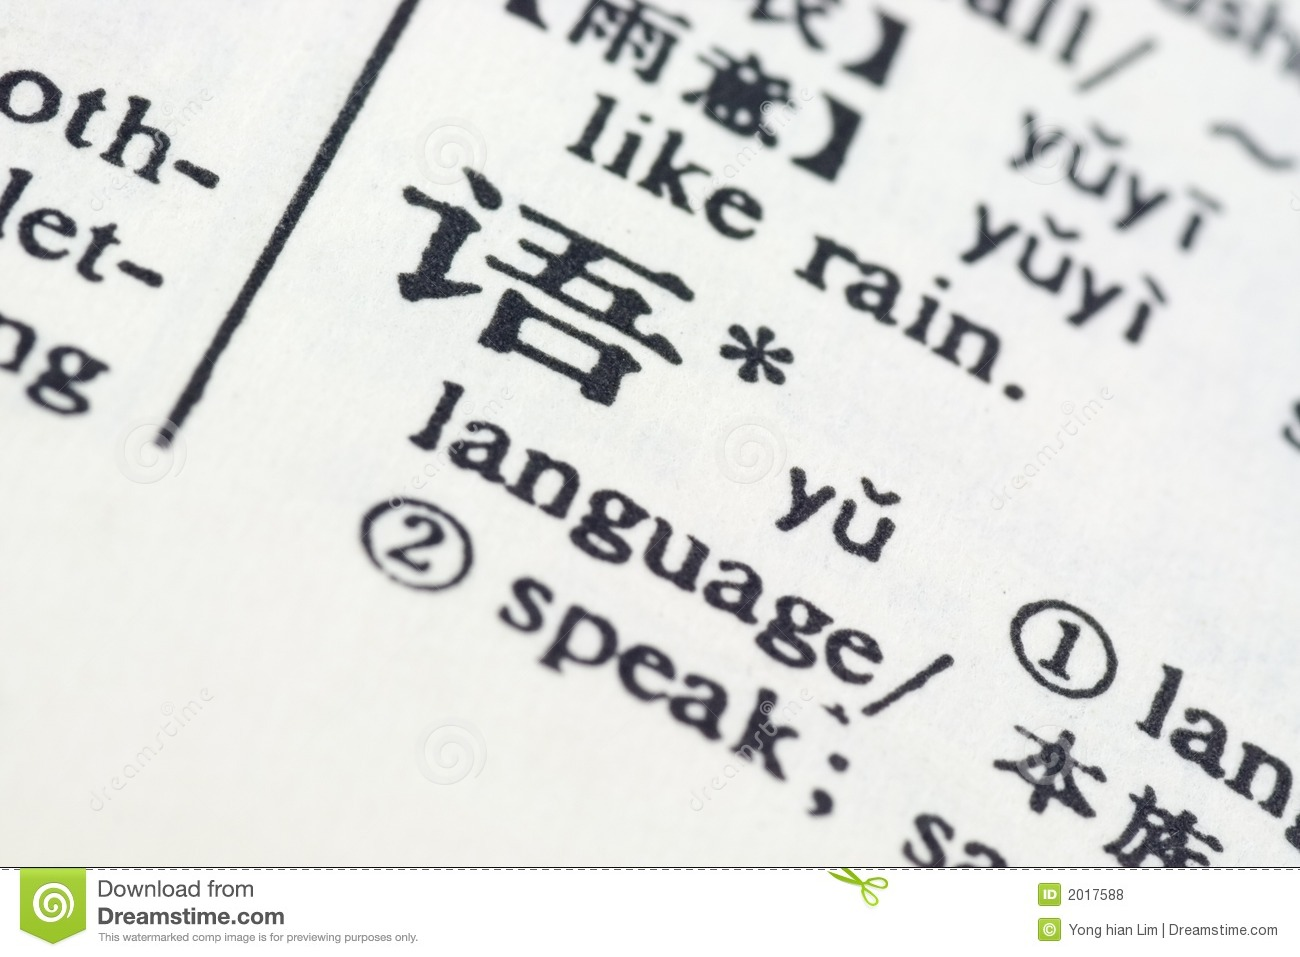 ricardo in chinese writing and meanings